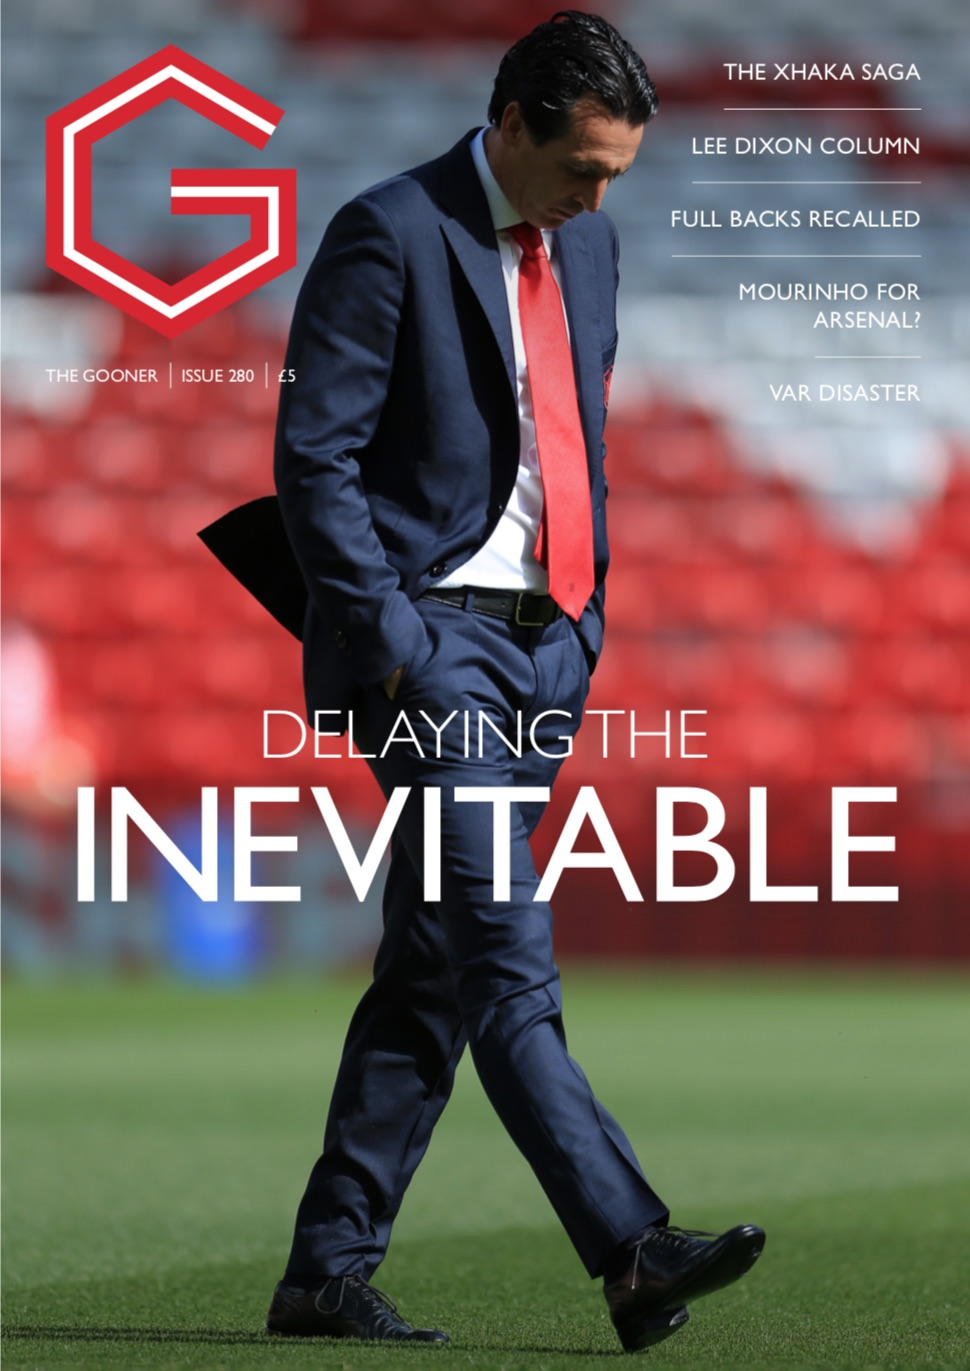 Current Edition (Overseas) – The Gooner Issue 280